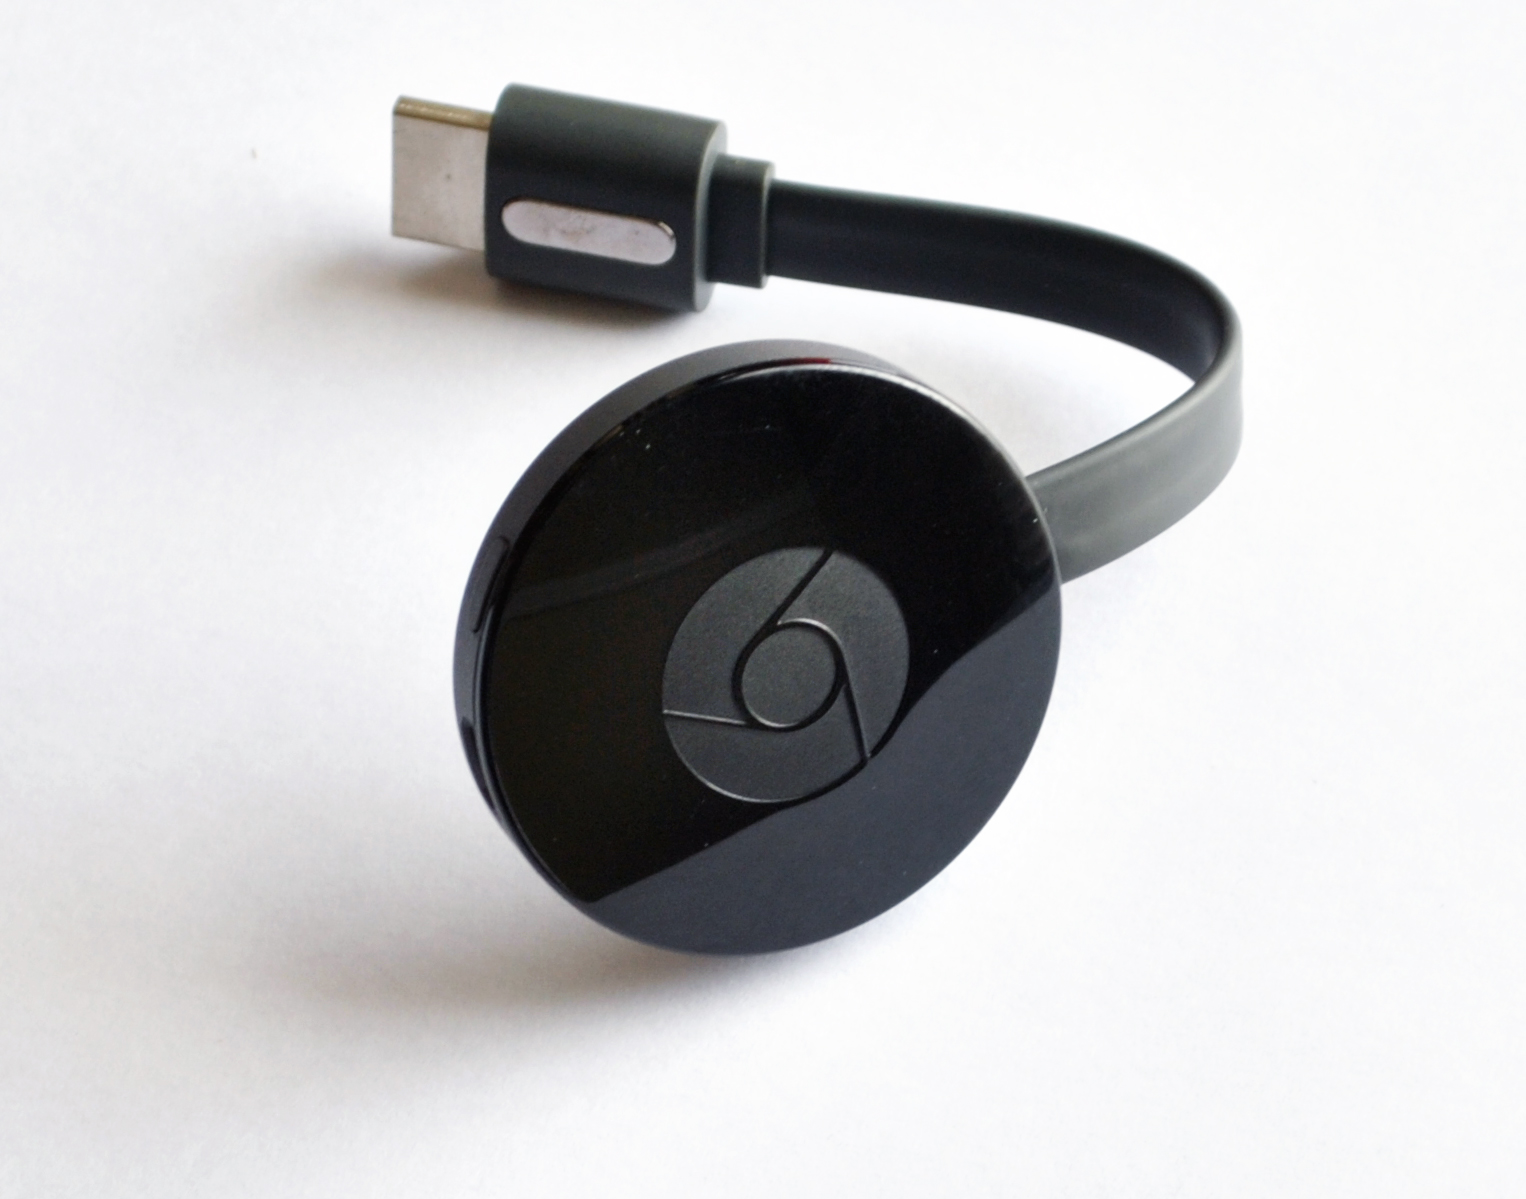 Review: Chromecast